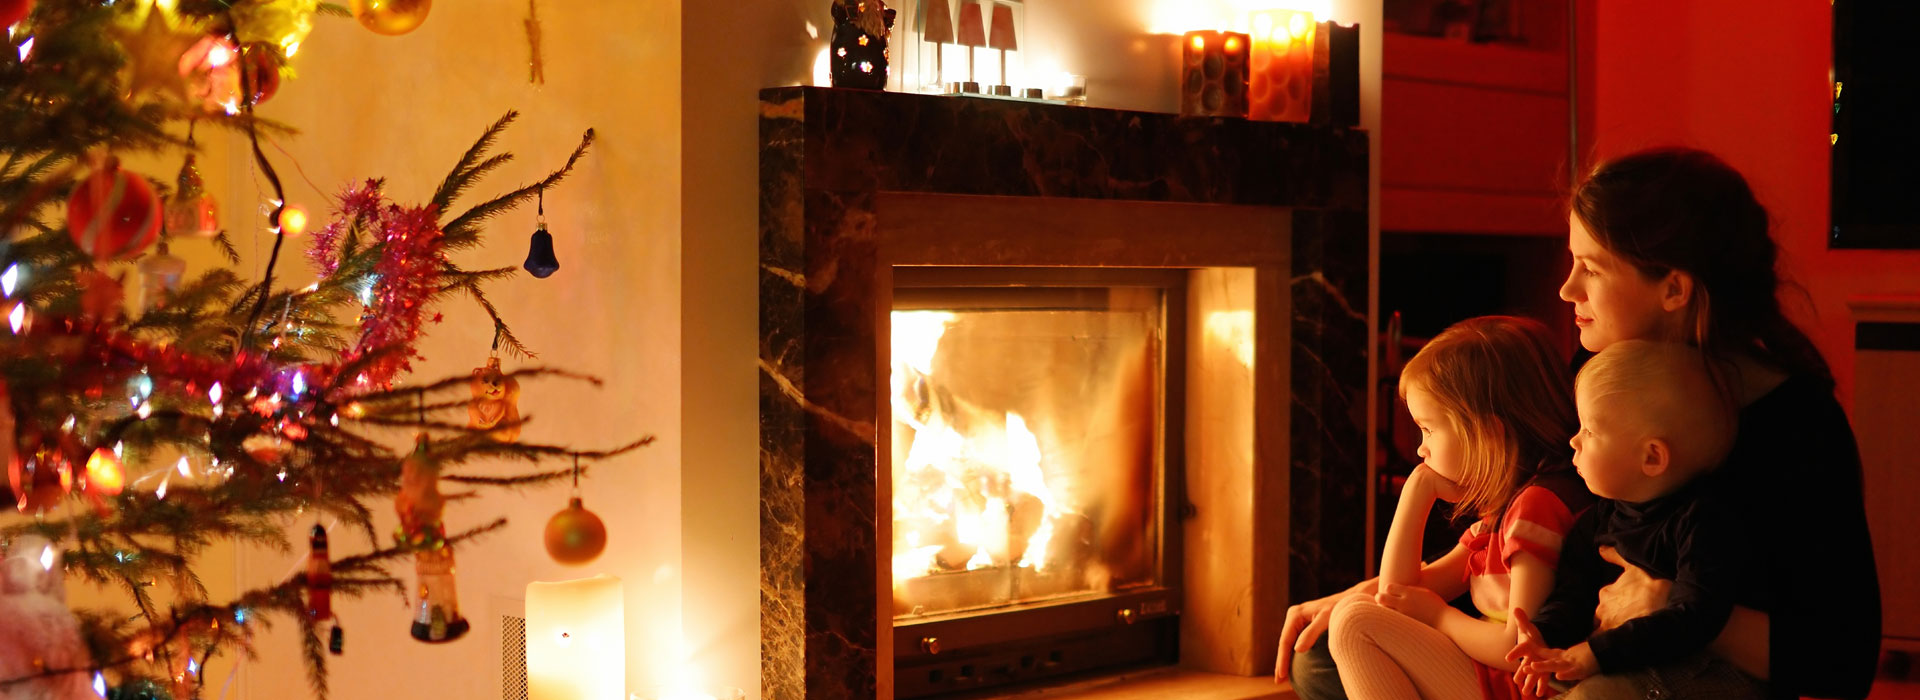 Fireplaces Slider Image